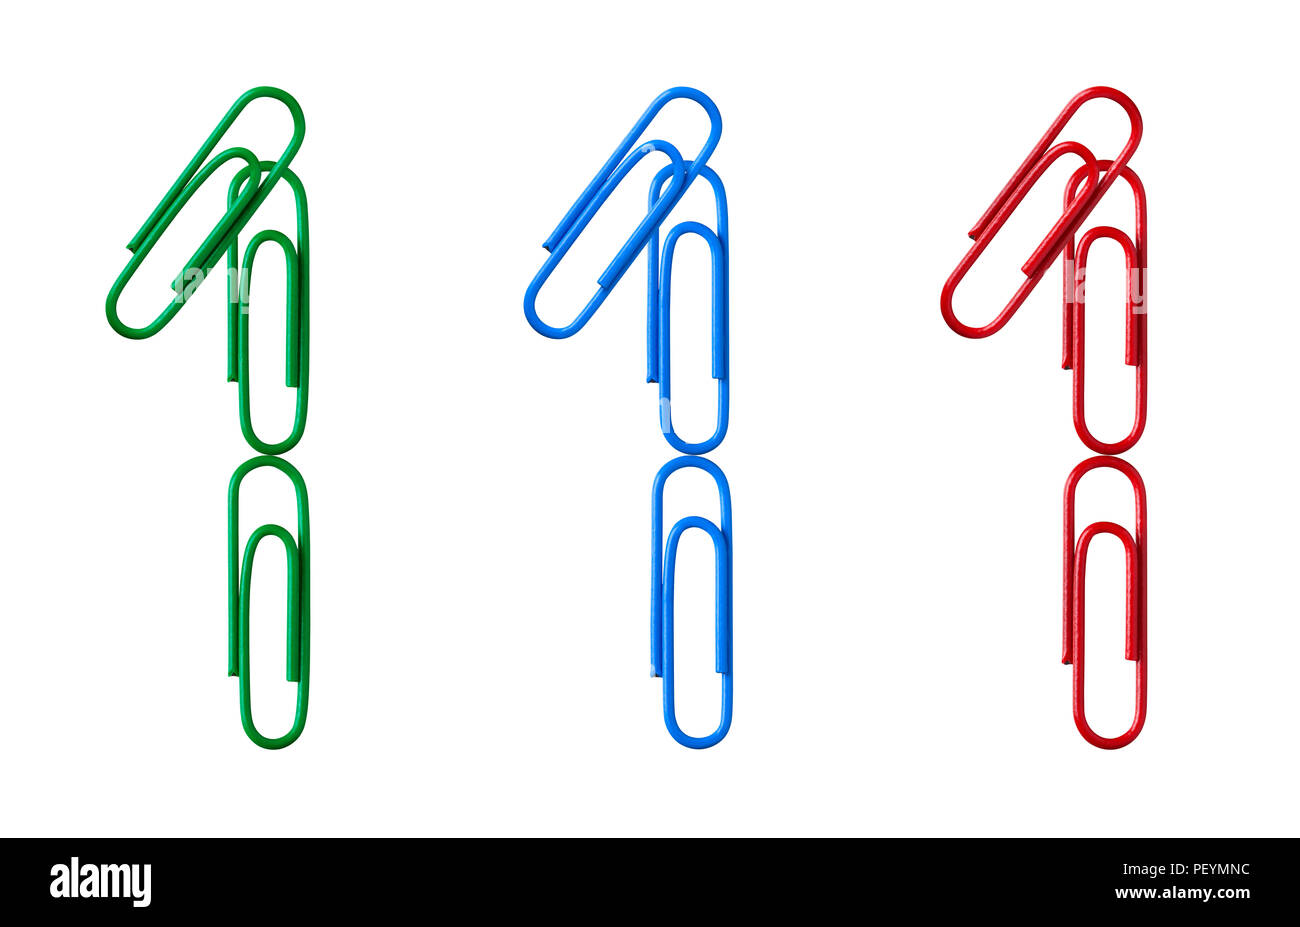 Multi-colored figures from paper clips isolated on white background. Number one. - Stock Image